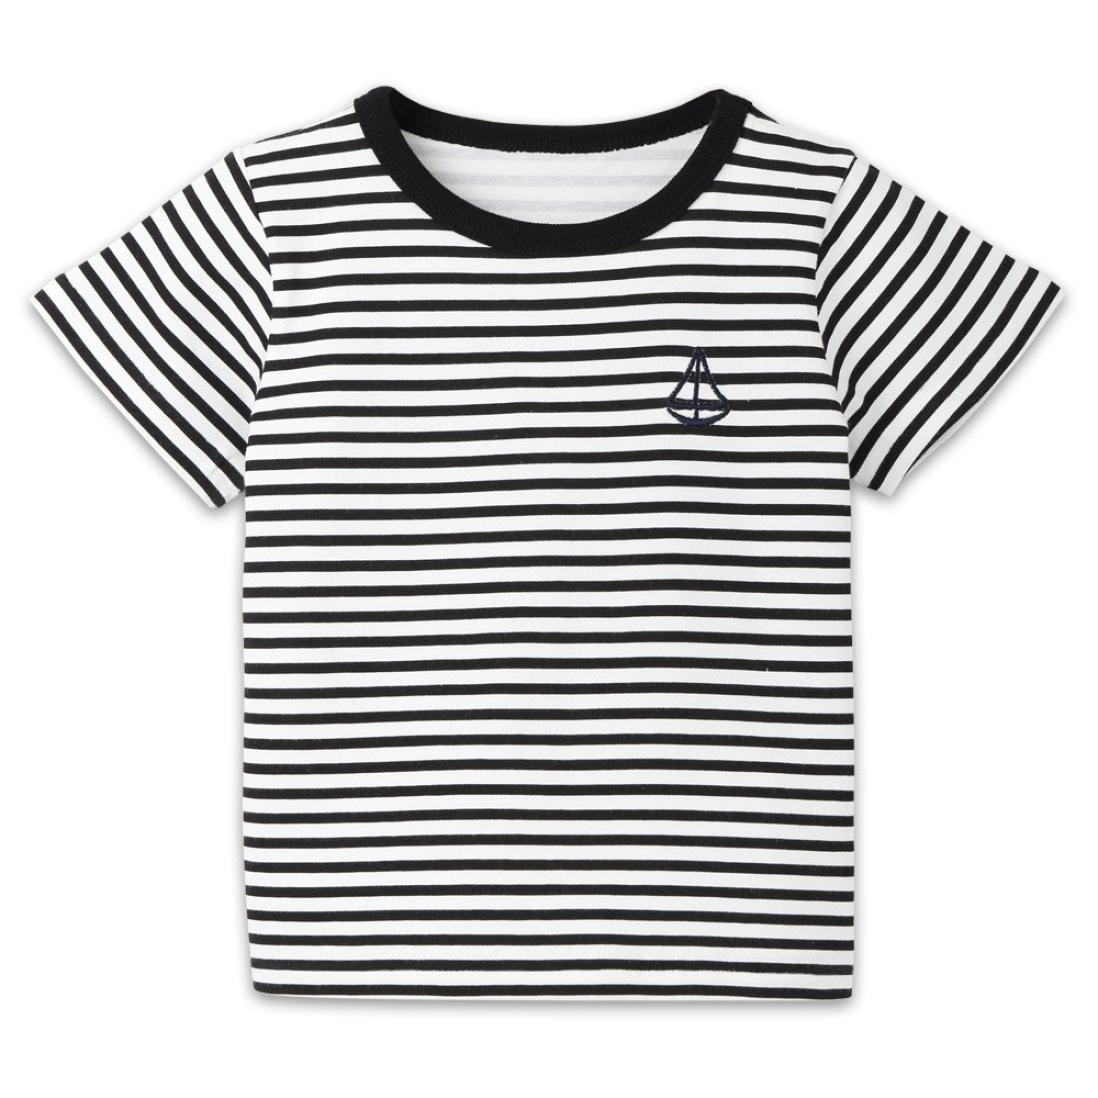 Jchen Baby Kids Girls Boys Striped Boat Print Short Sleeve T-Shirt Tops Shirts Tee for 1-7 T